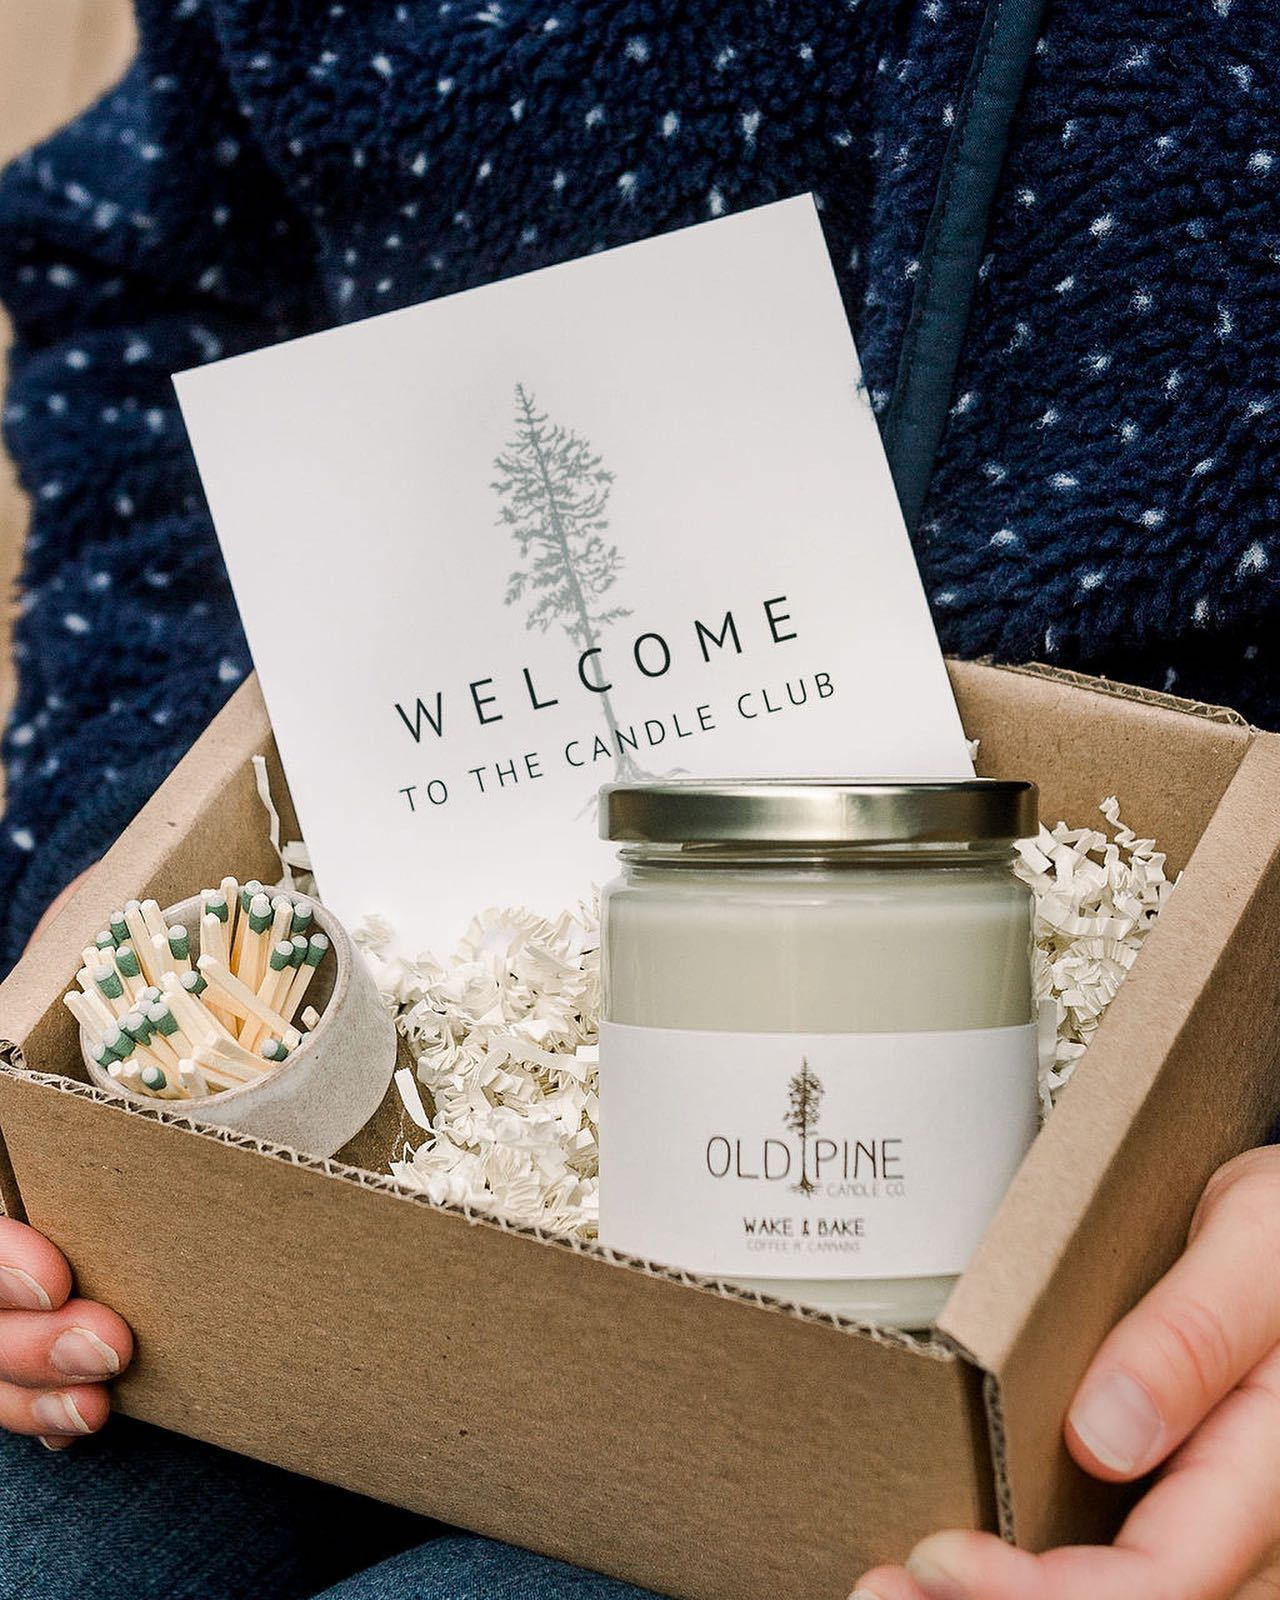 image of gift set from old pine candle company